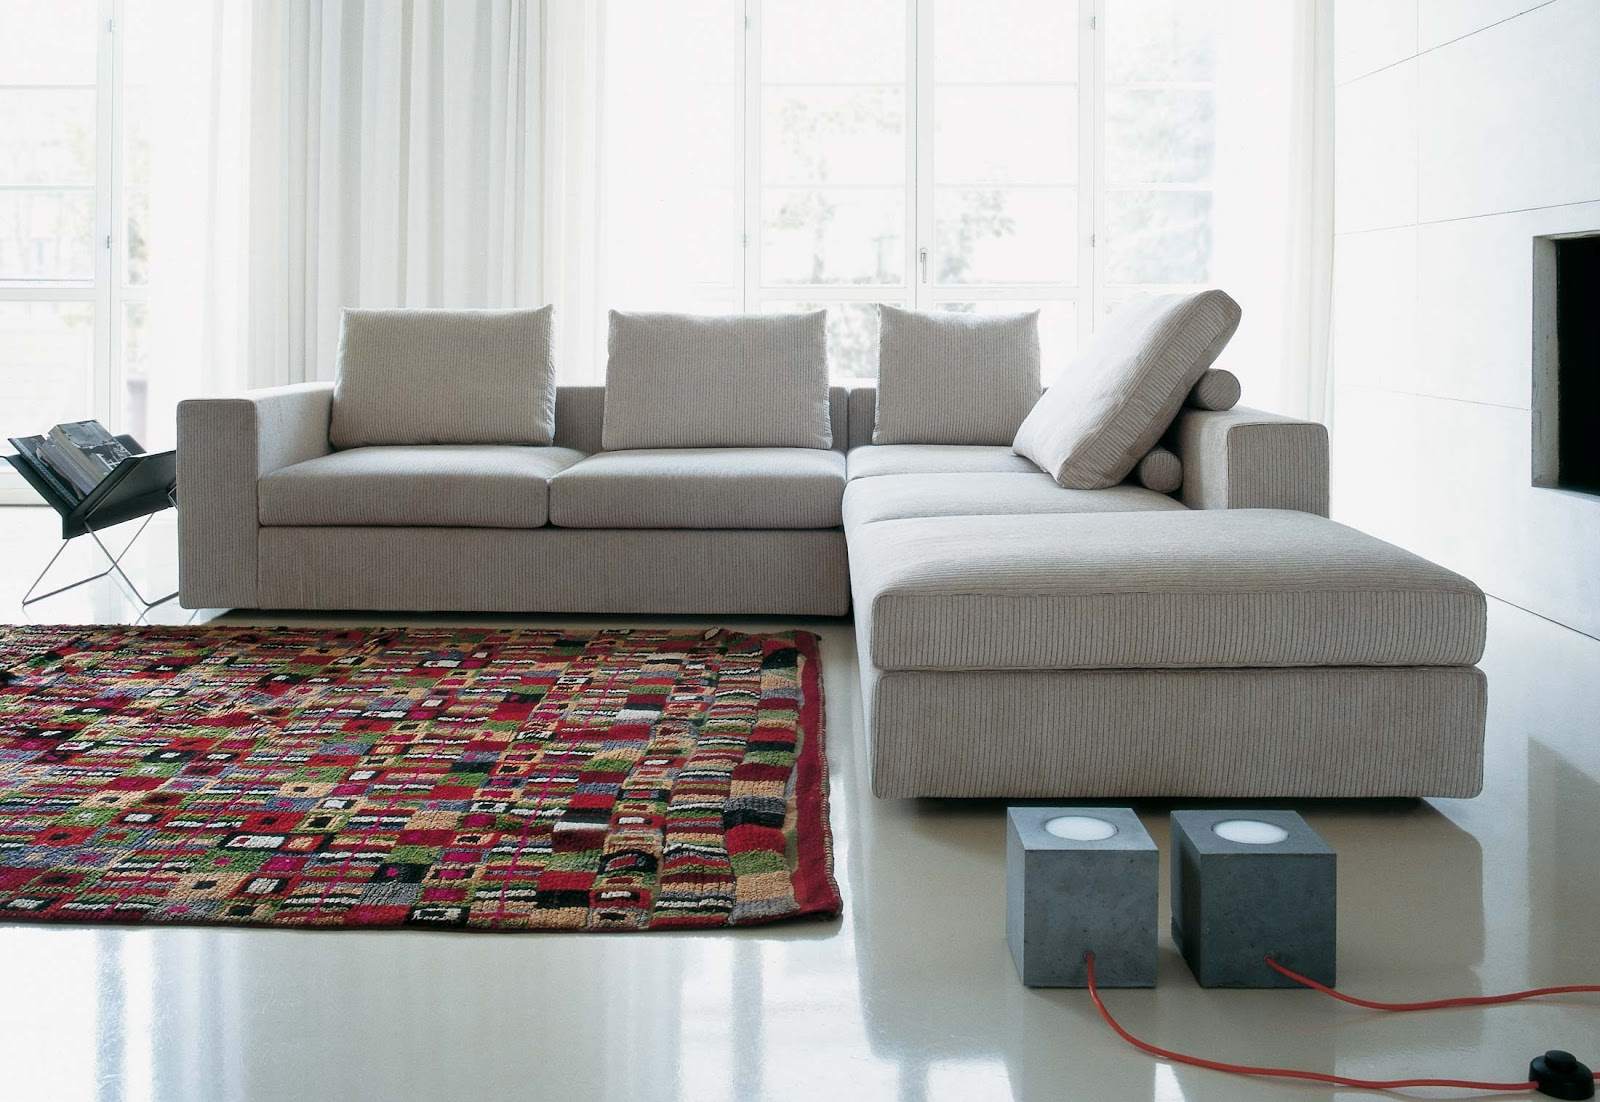 zanotta sofa bed covering service london beta by designer furniture fitted